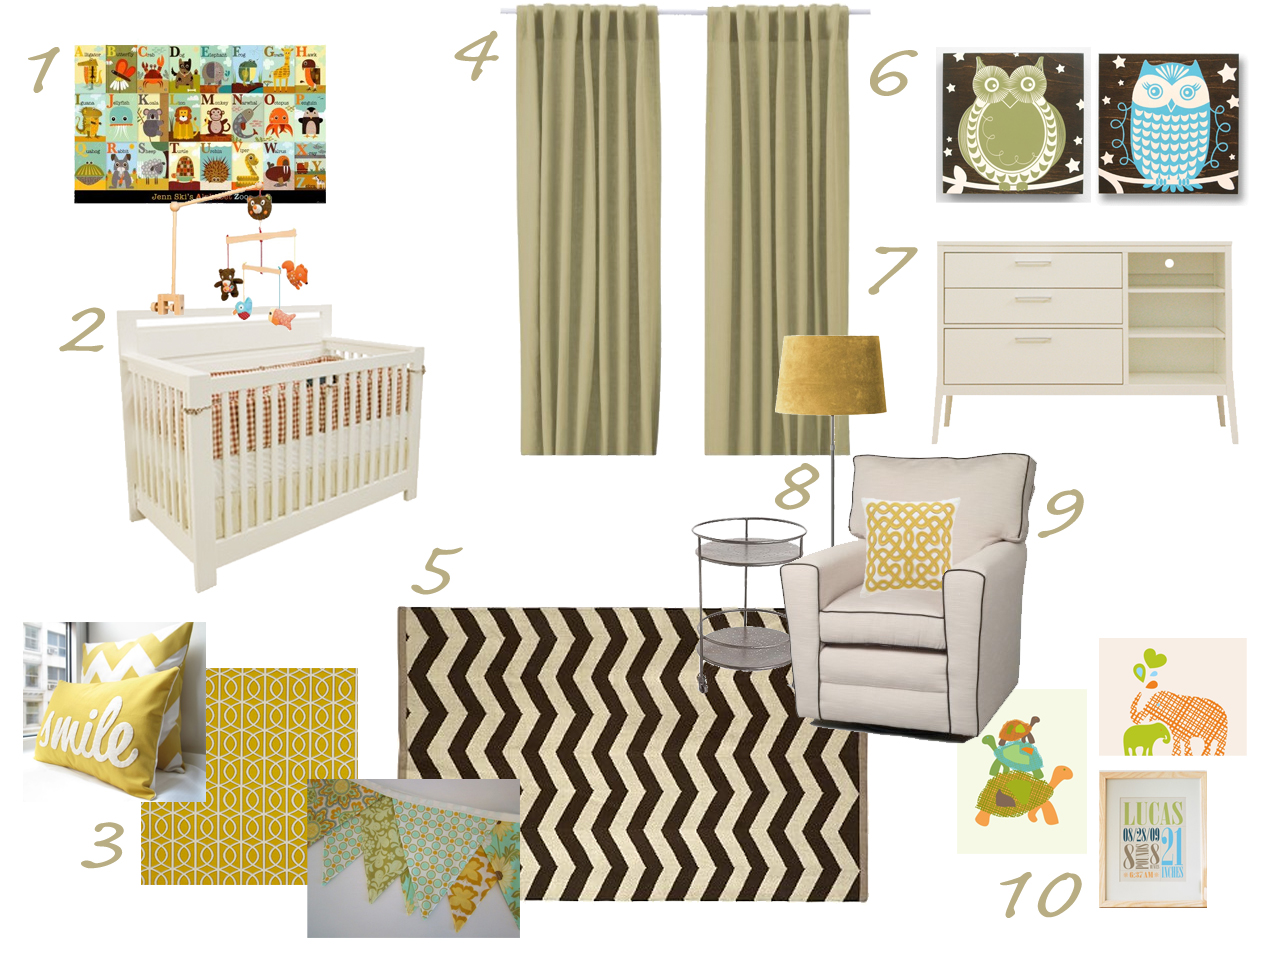 Pin by kate lewis on baby pinterest for Modern nursery images